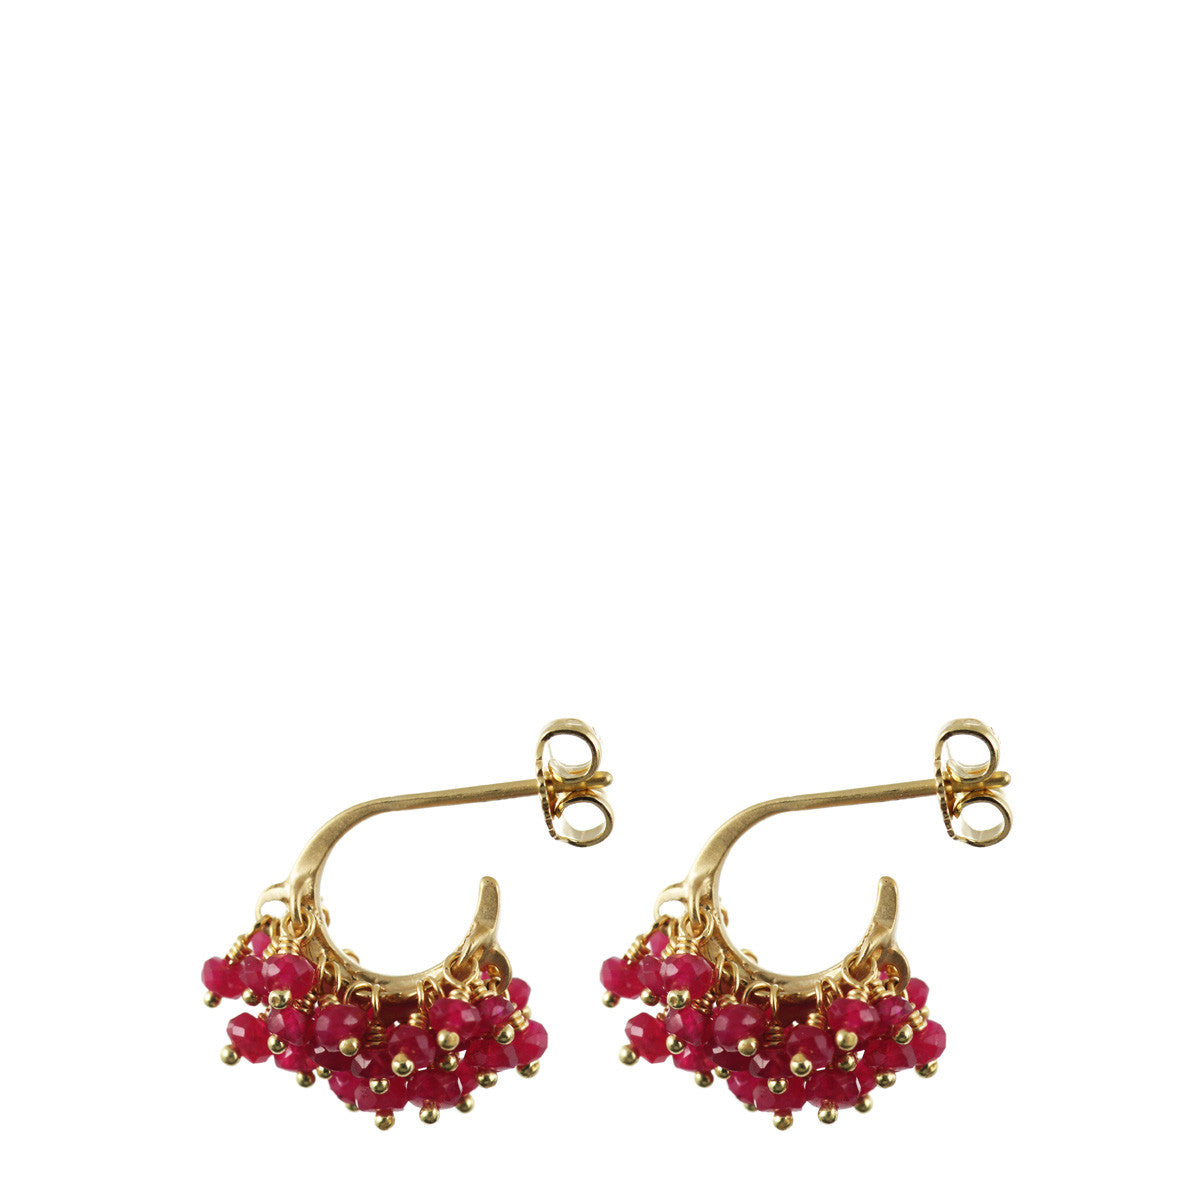 18K Gold All Ruby Bead Hoop Earrings